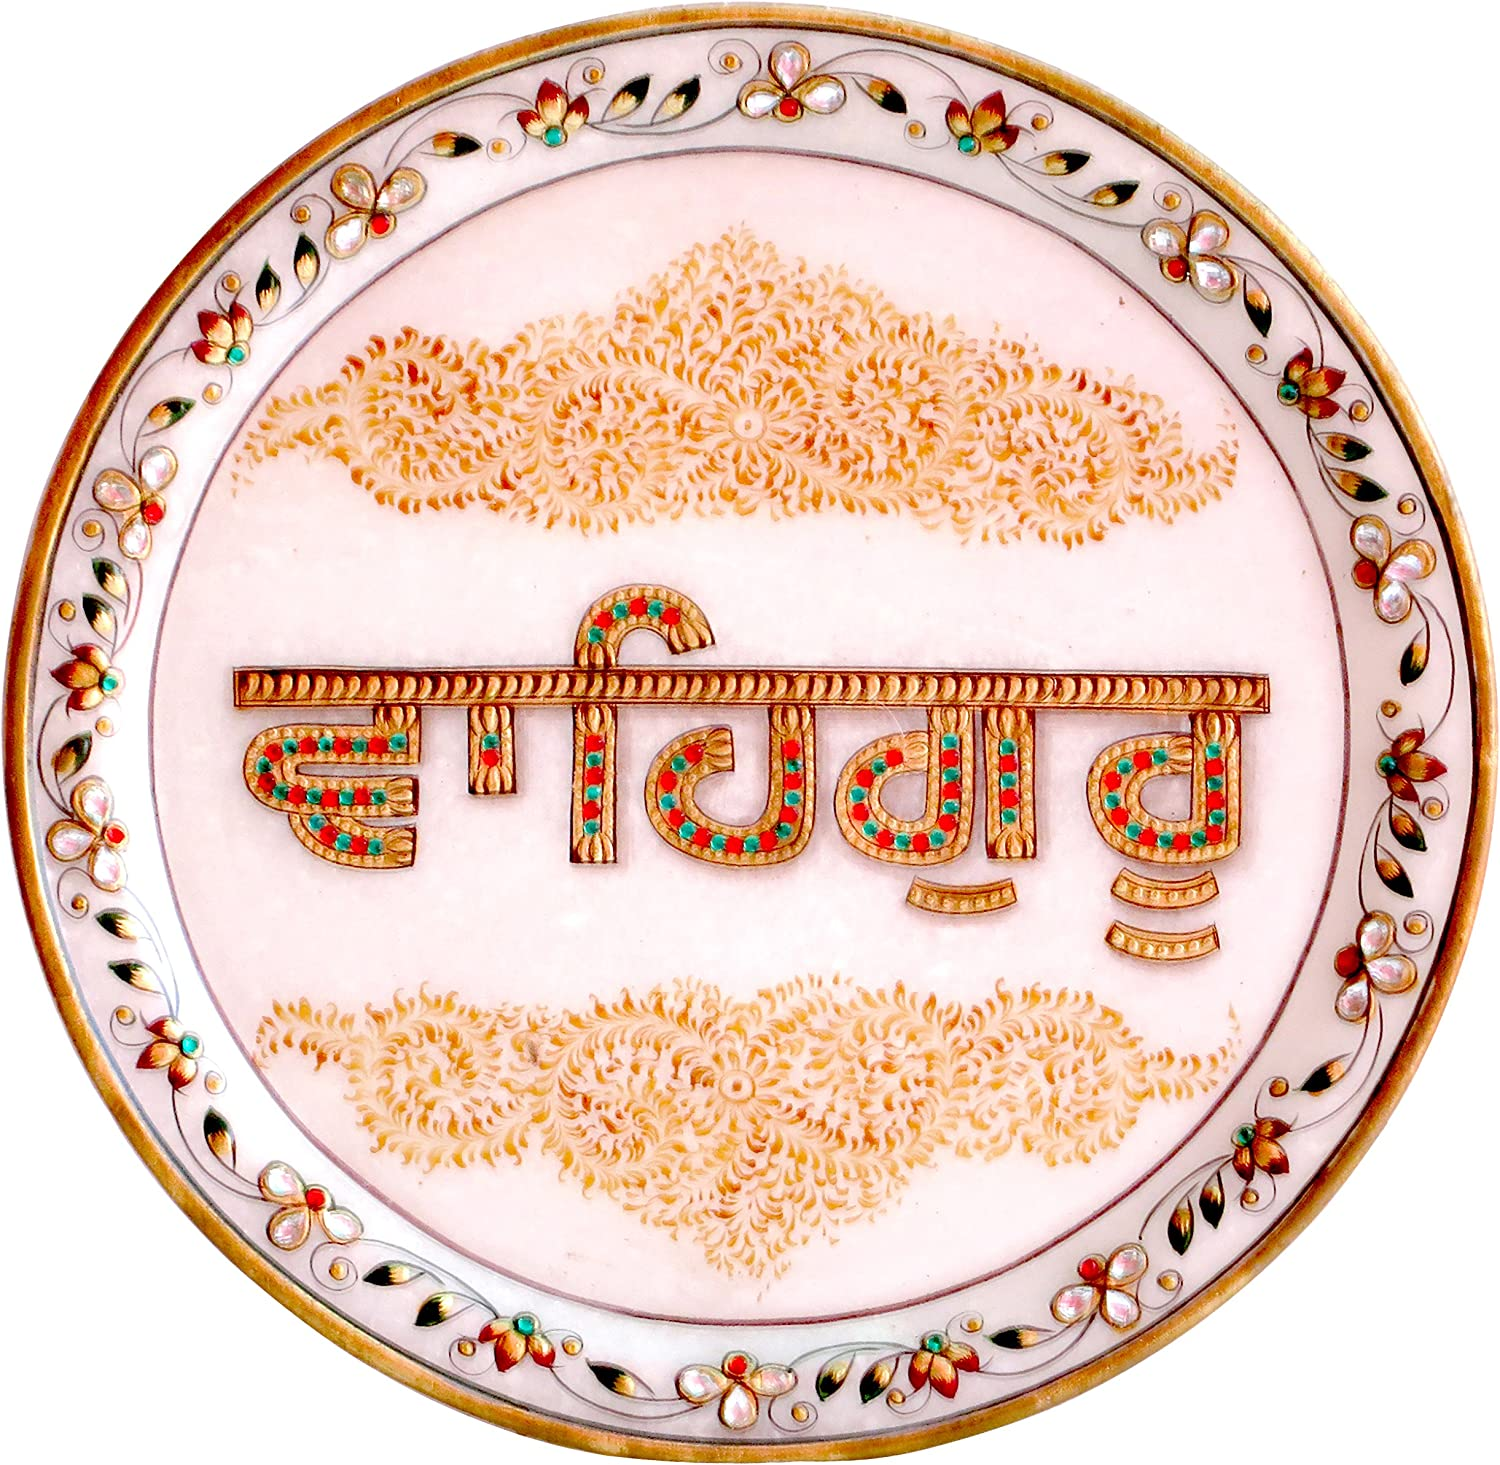 Handicraft Store Wahe Guru, Painting of Sikh Religious Word on Marble Plate Round, a Spritual and Religious Decorative Item for Home Decor and Religious Purpose